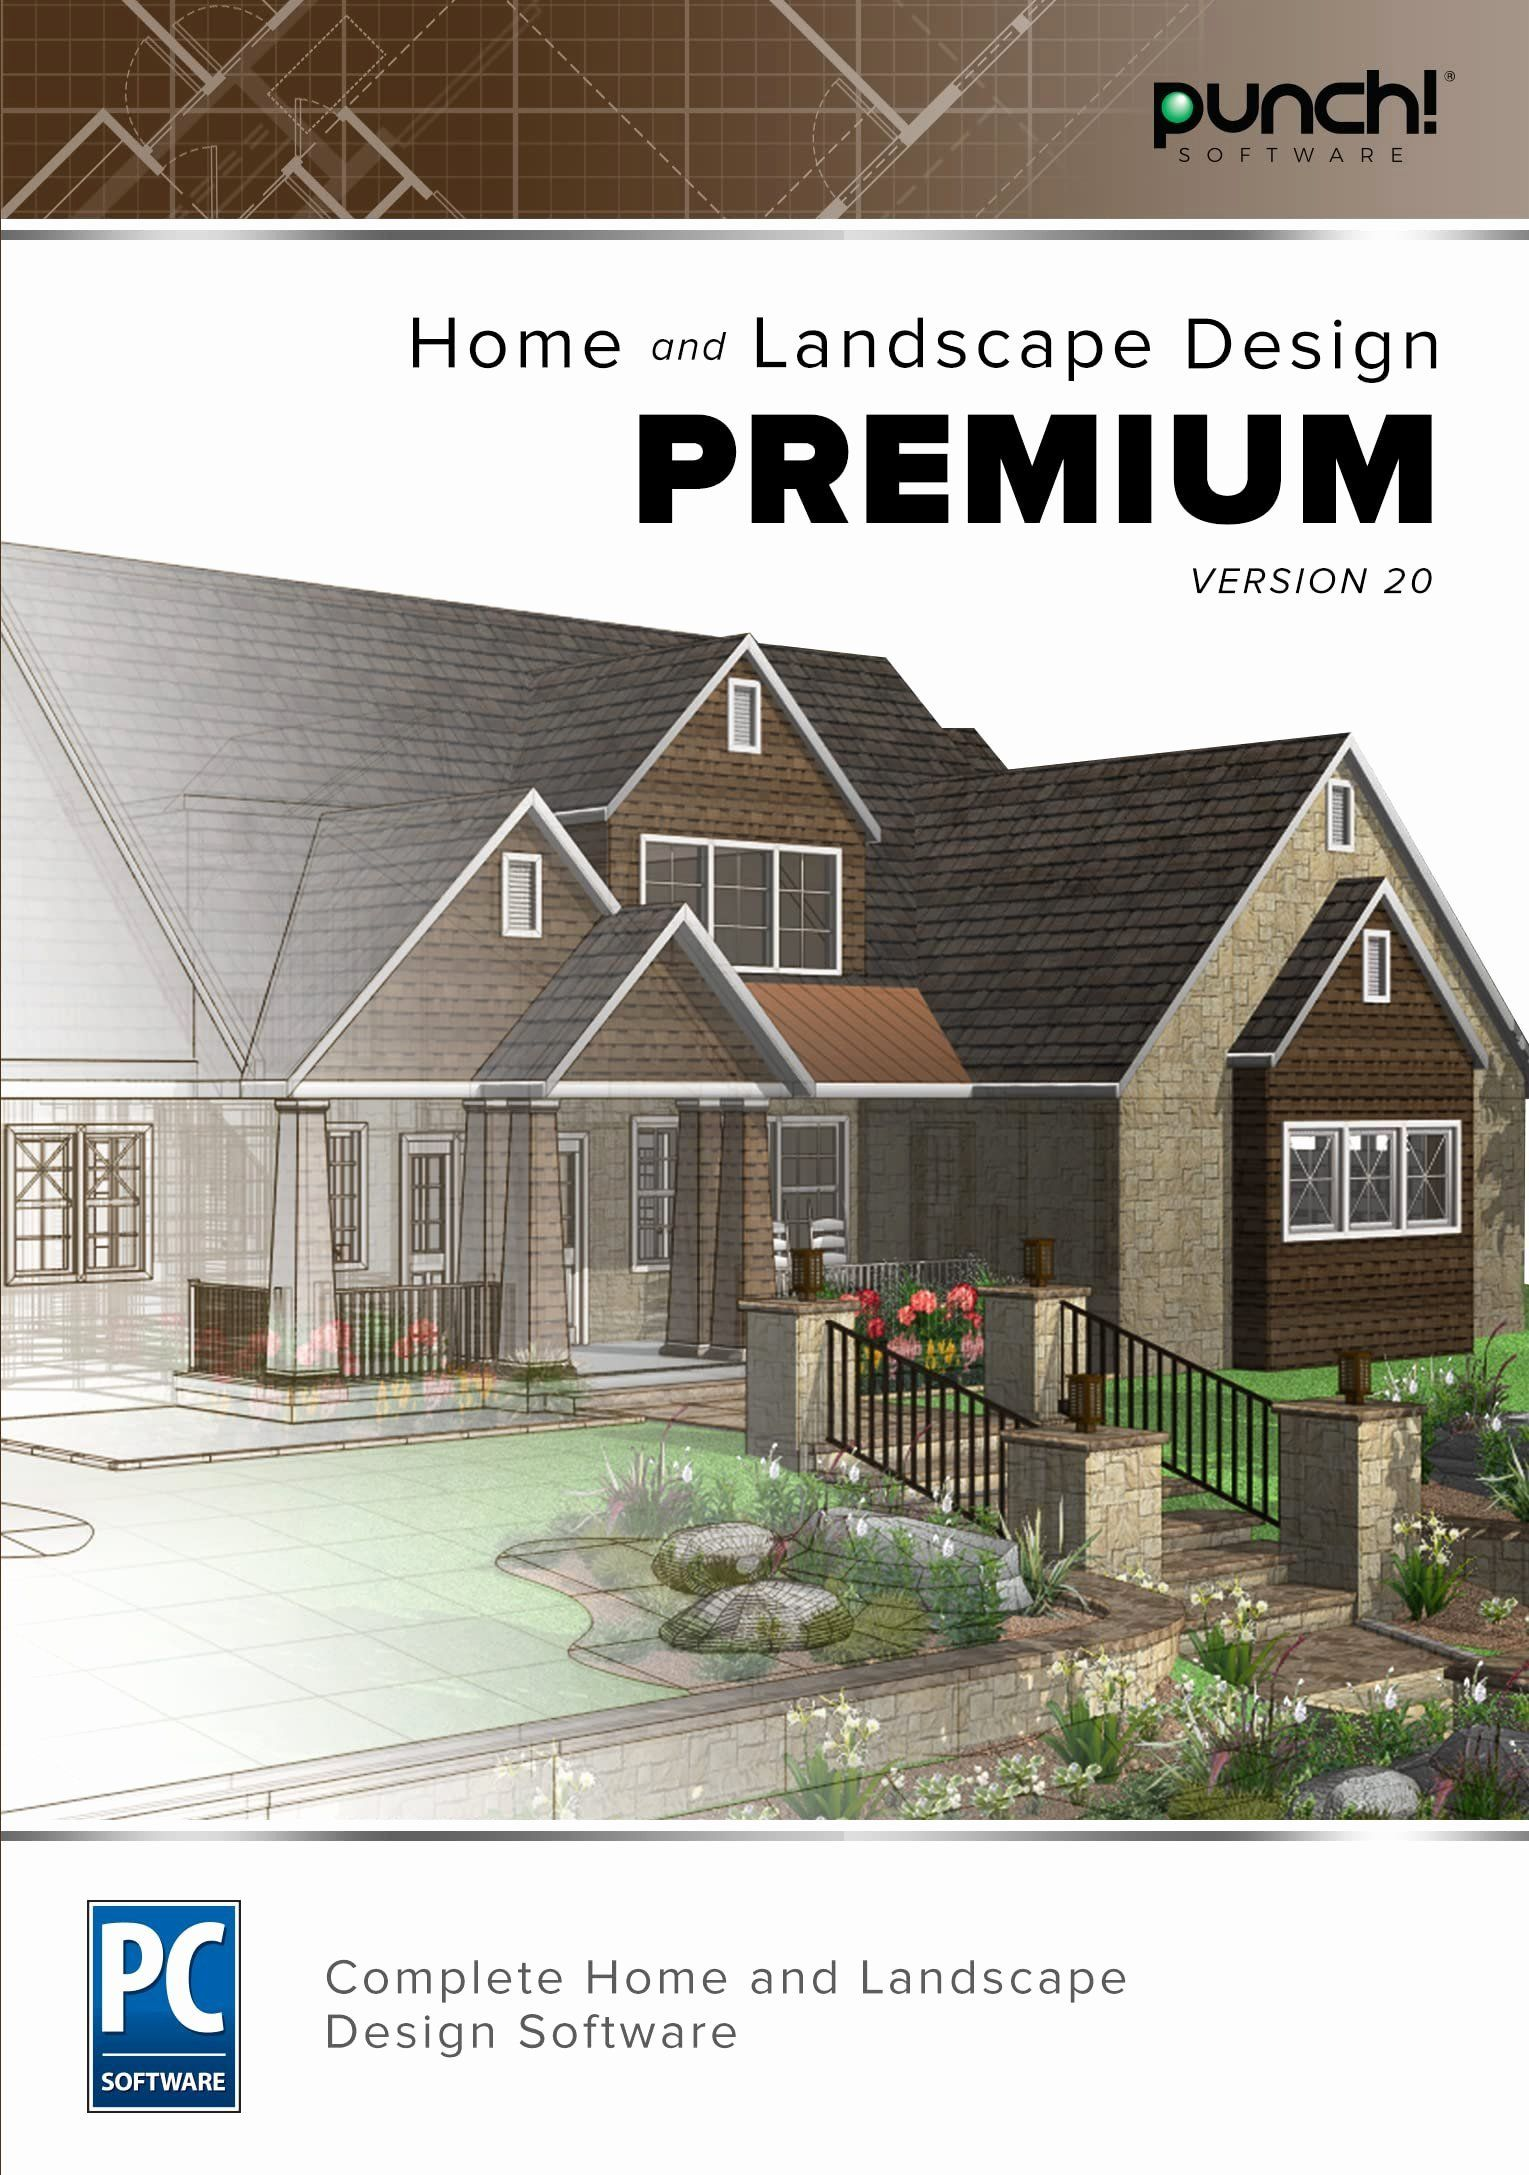 Home Design Software Free Download Full Version : design, software, download, version, Landscape, Design, Software, Download, Punch, Software,